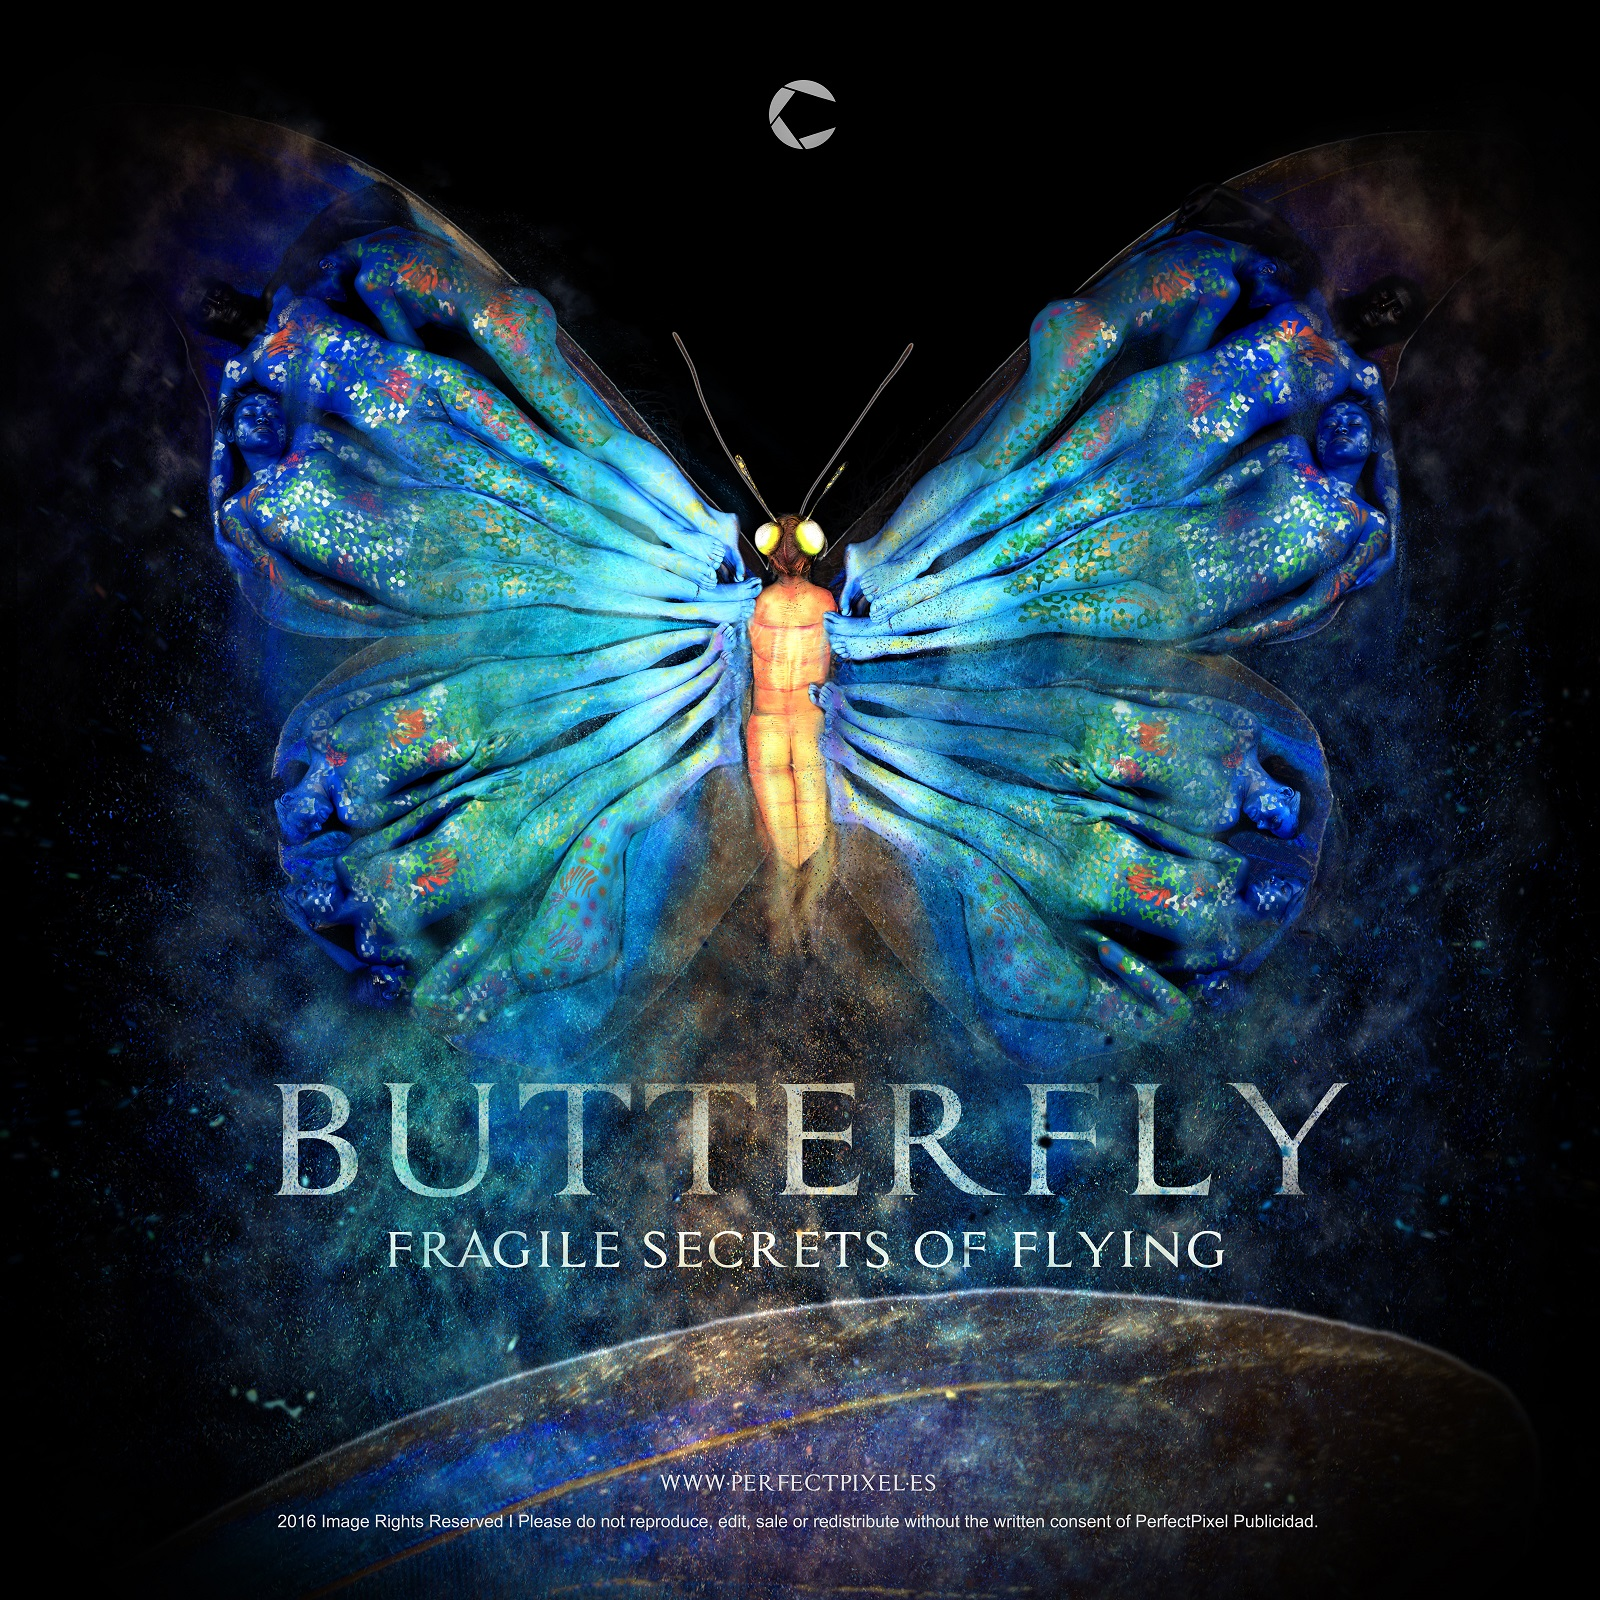 https://www.perfectpixel.es/wp-content/uploads/2016/01/Butterfly-Fragile-Secrets-of-FLying-by-PerfectPixel-Box-final-LR.jpg